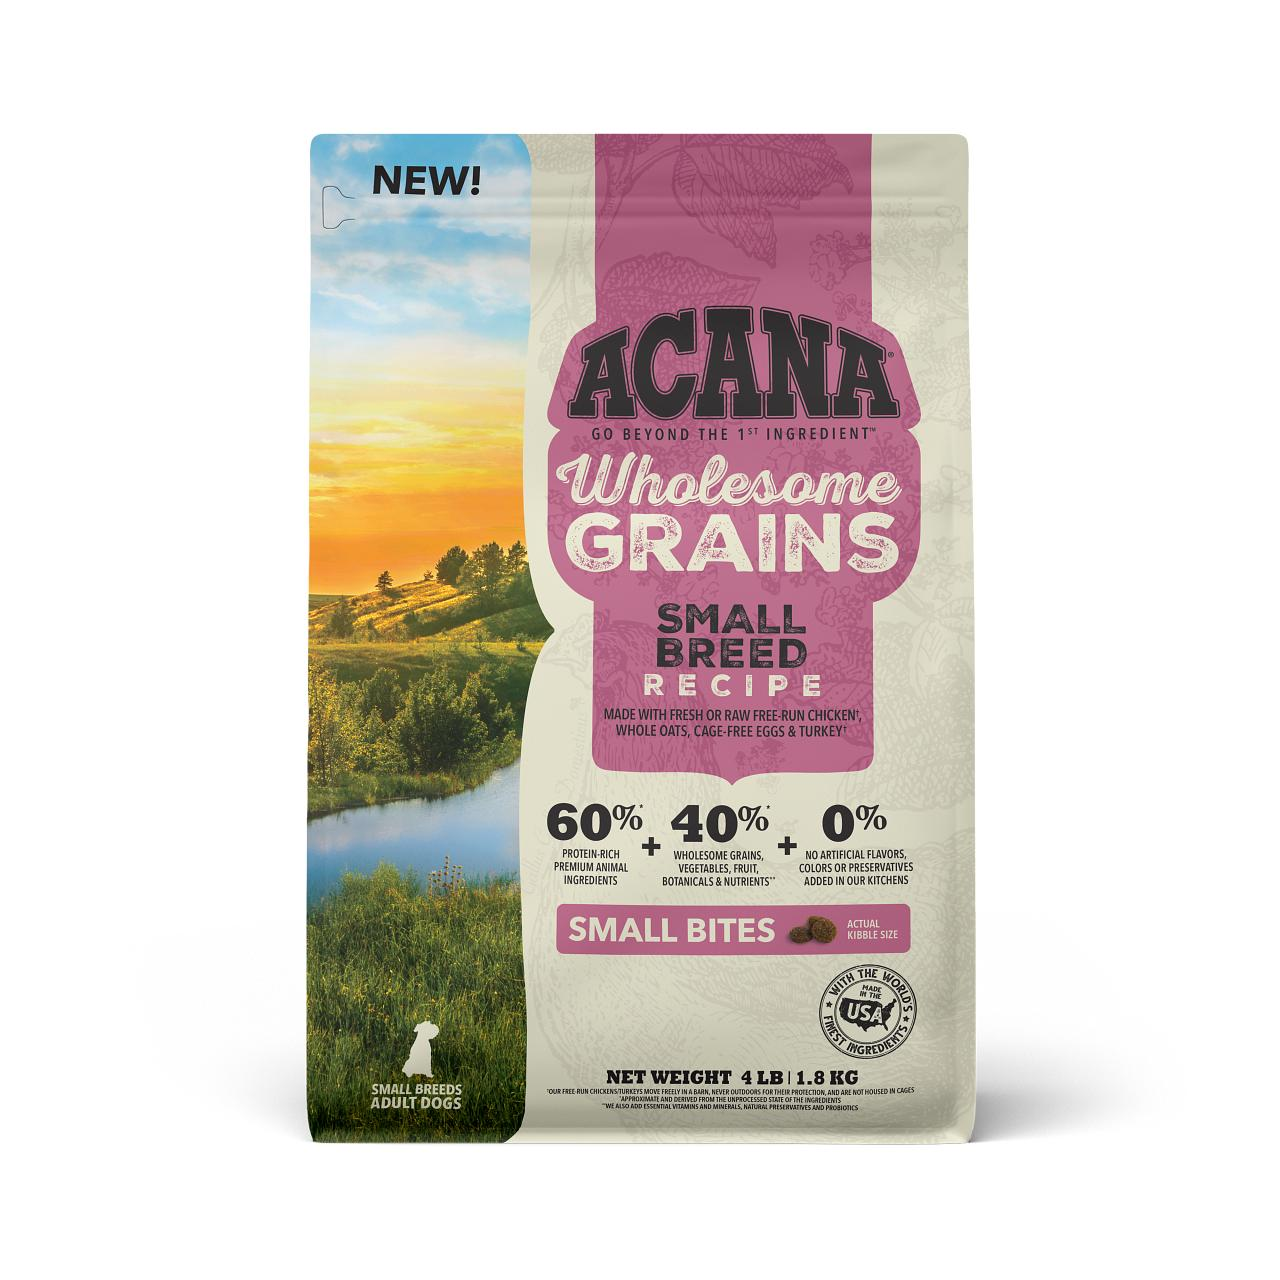 ACANA Wholesome Grains Small Breed Recipe Dry Dog Food, 11.5-lb